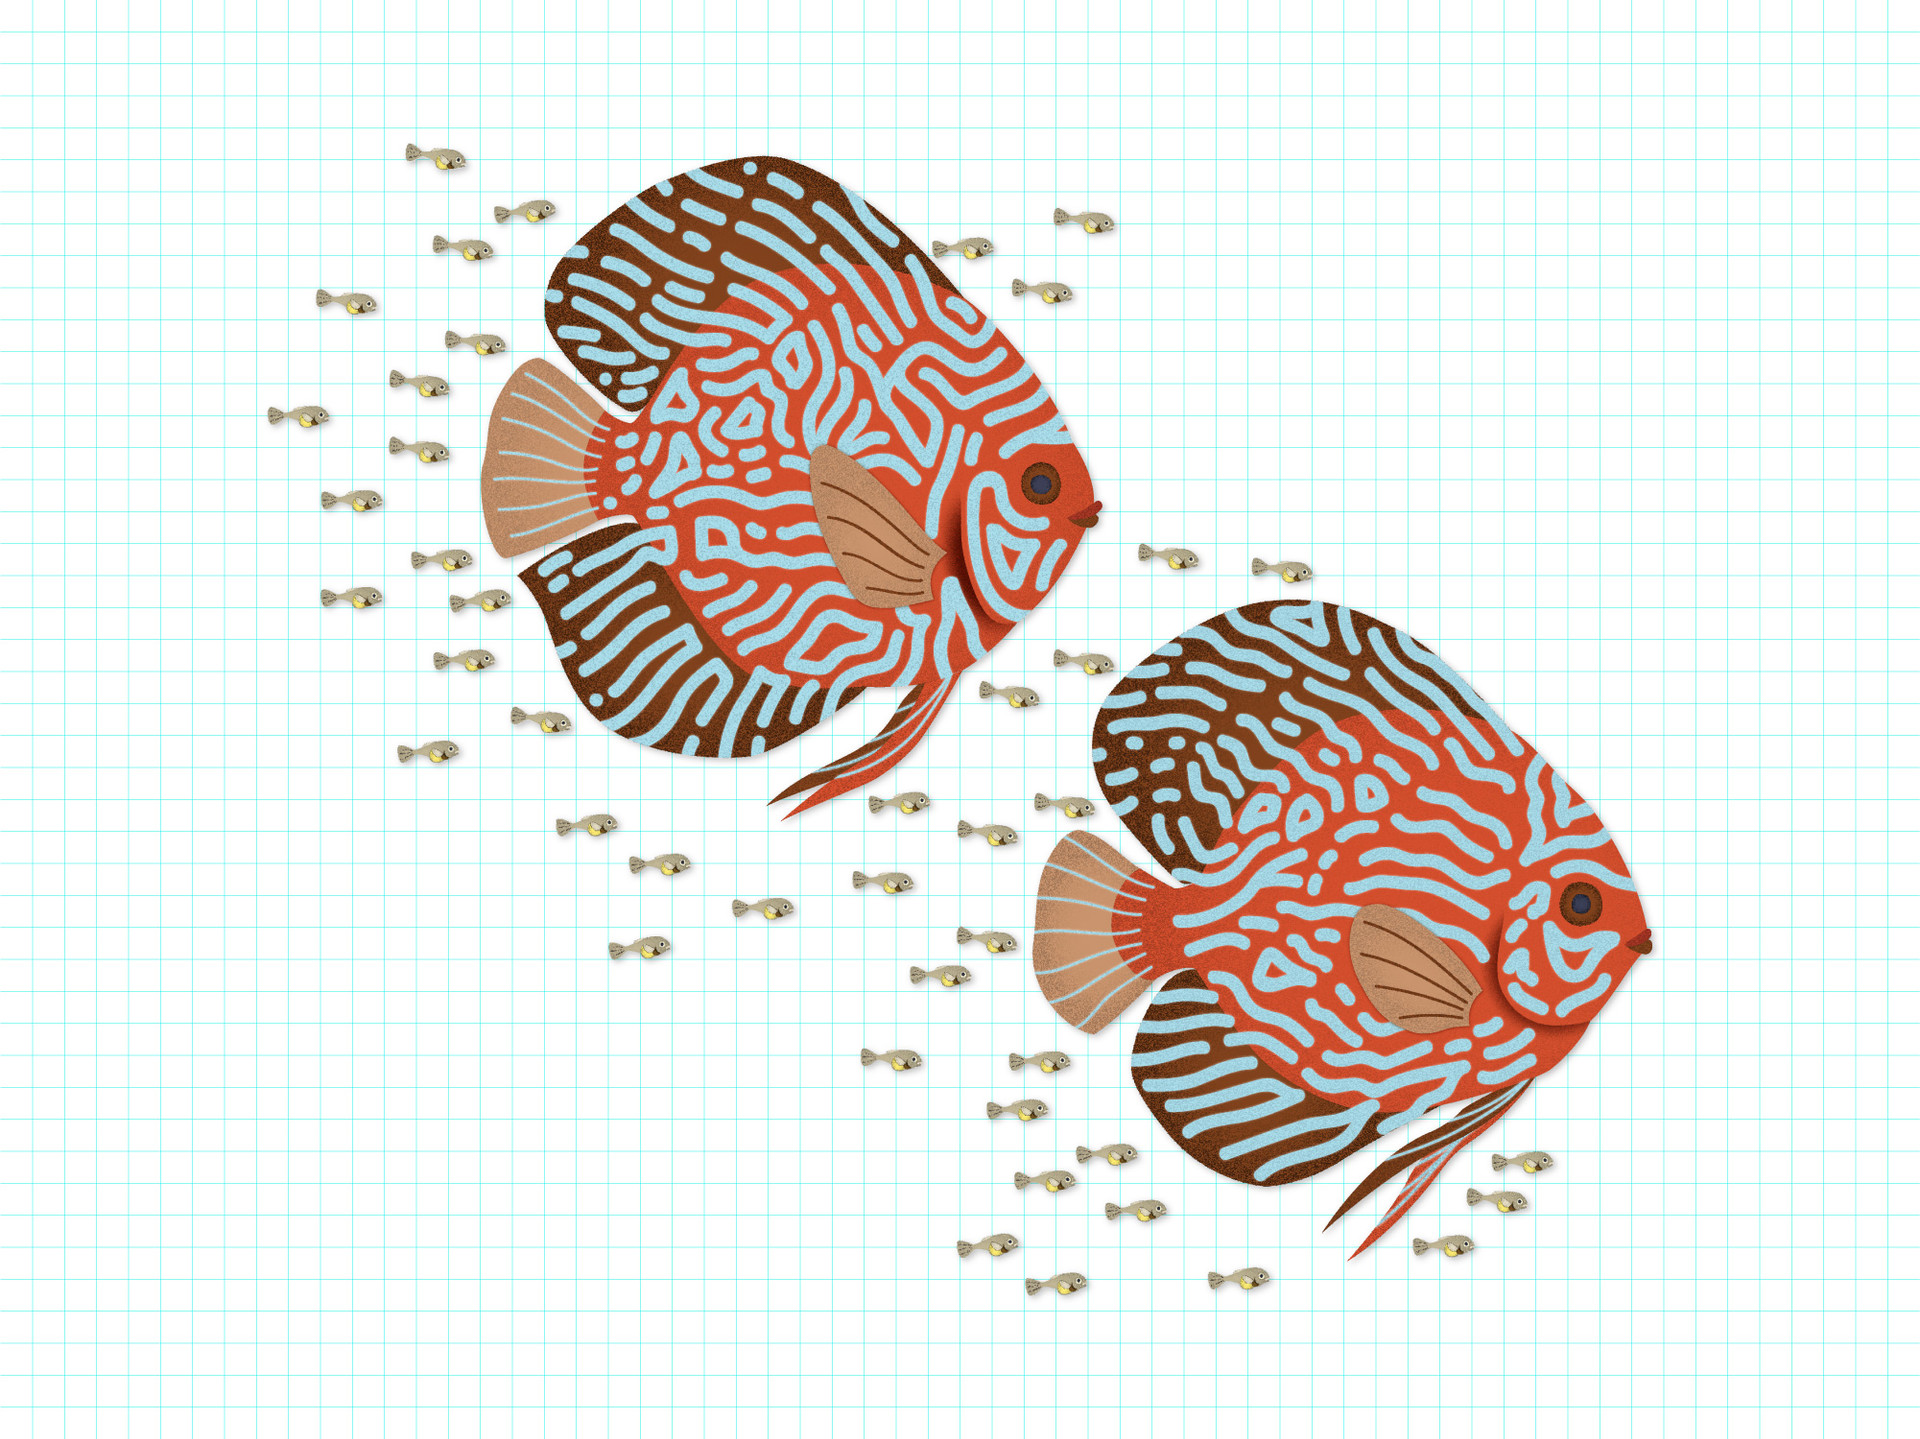 triet-pham_aquarium-fish-illustration-05